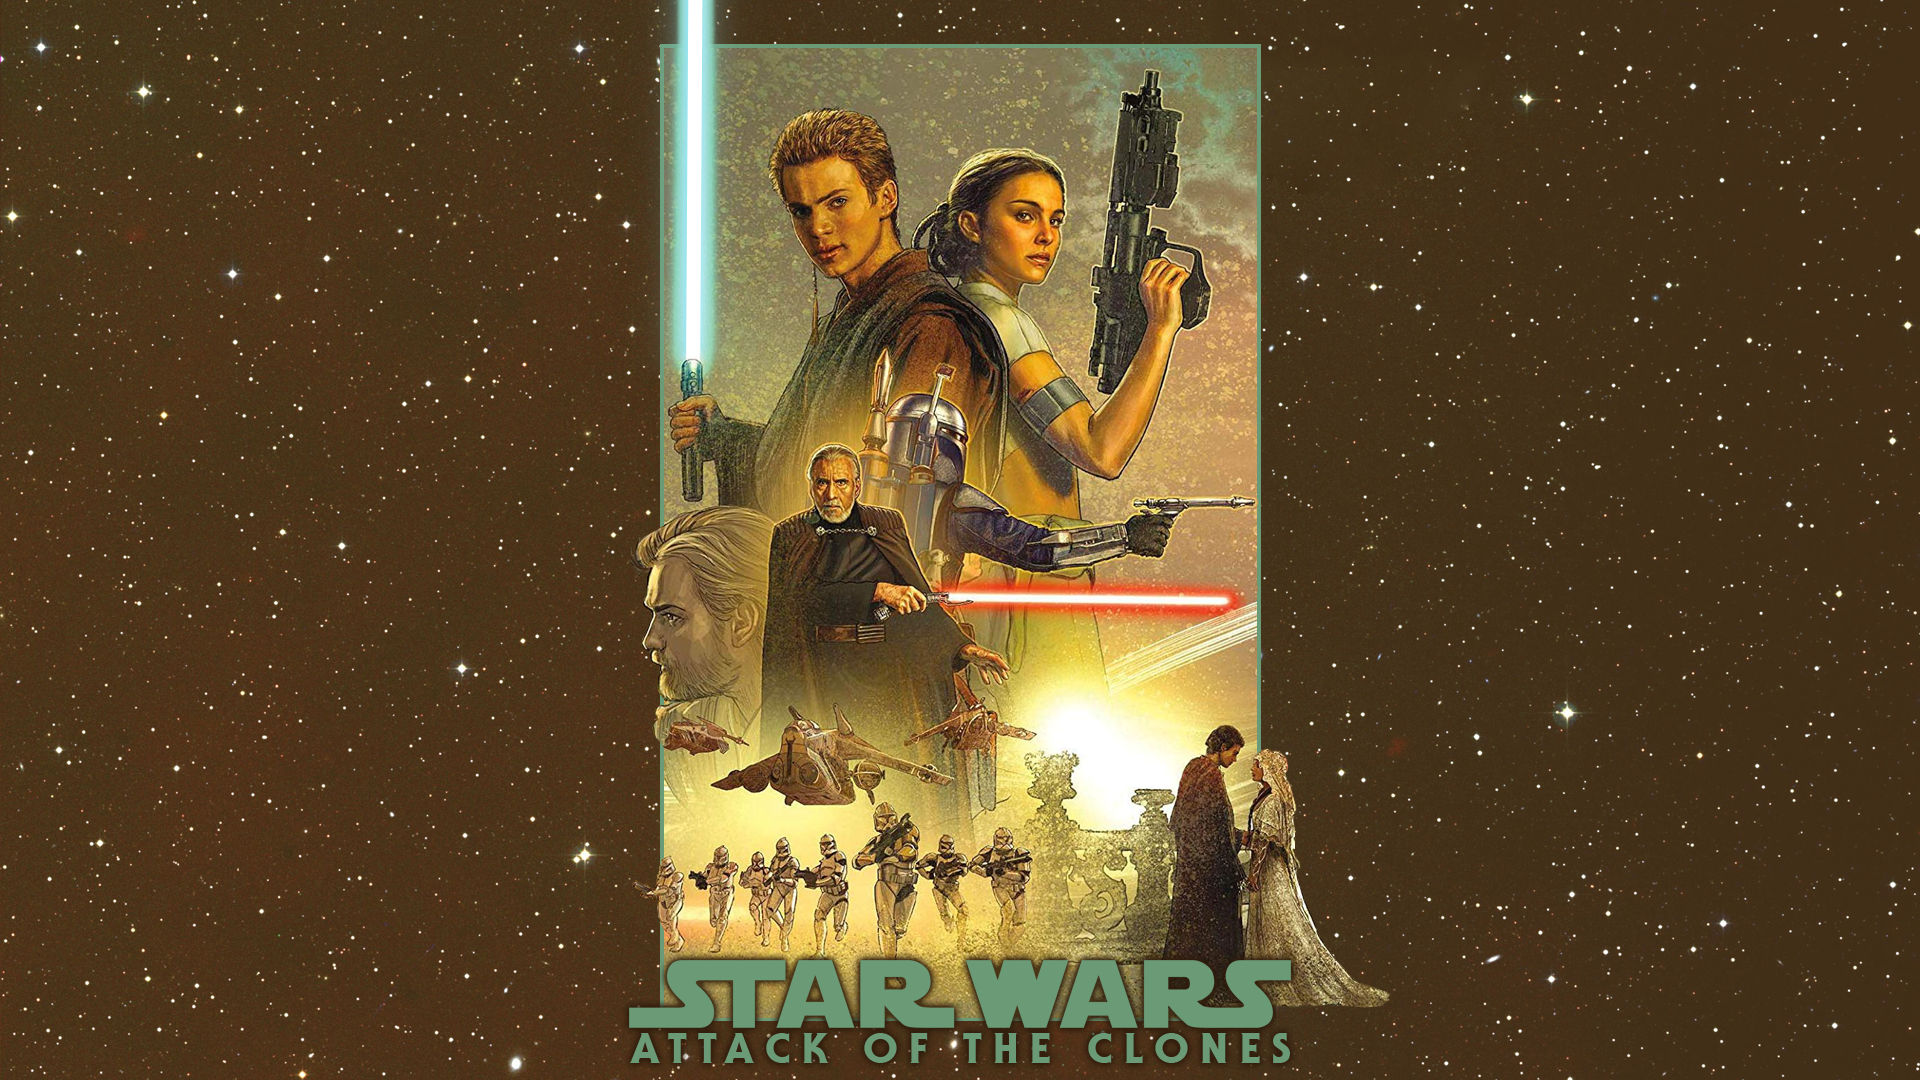 Attack Of The Clones Mural Wallpaper By Spirit Of Adventure On